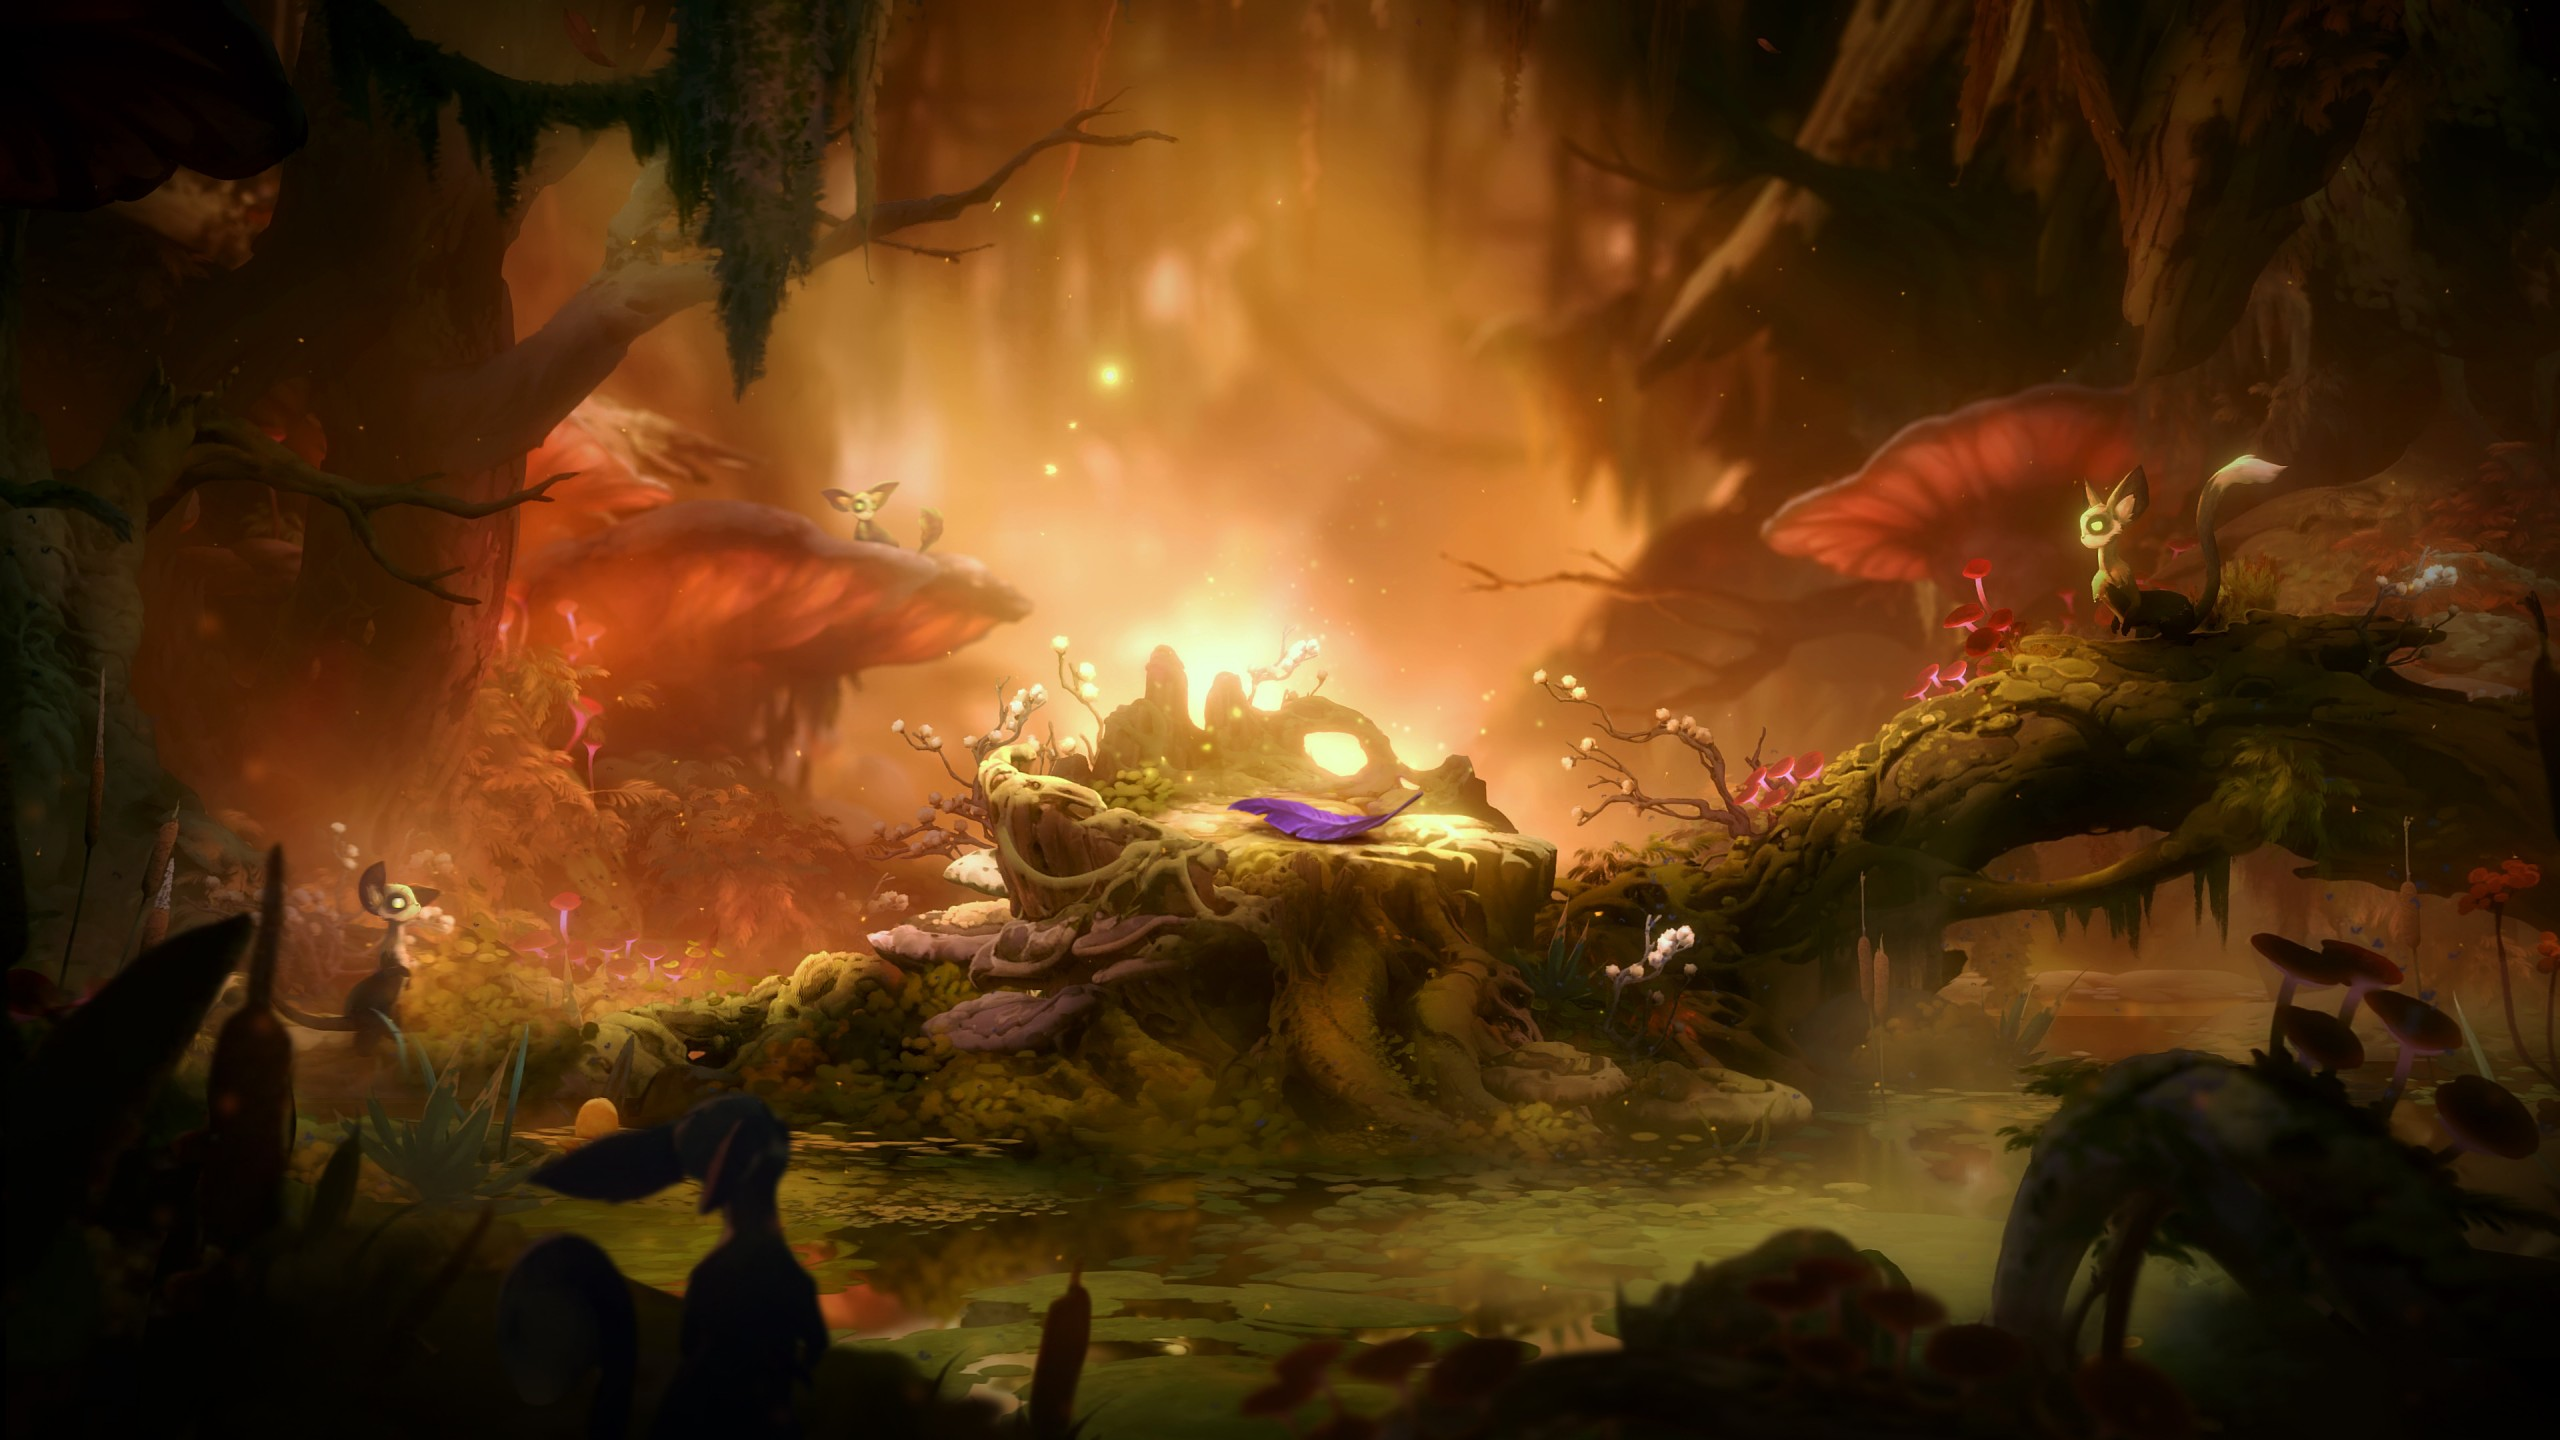 Awsome Cute Skull Wallpapers Ori And The Will Of The Wisps Wallpapers Hd Wallpapers